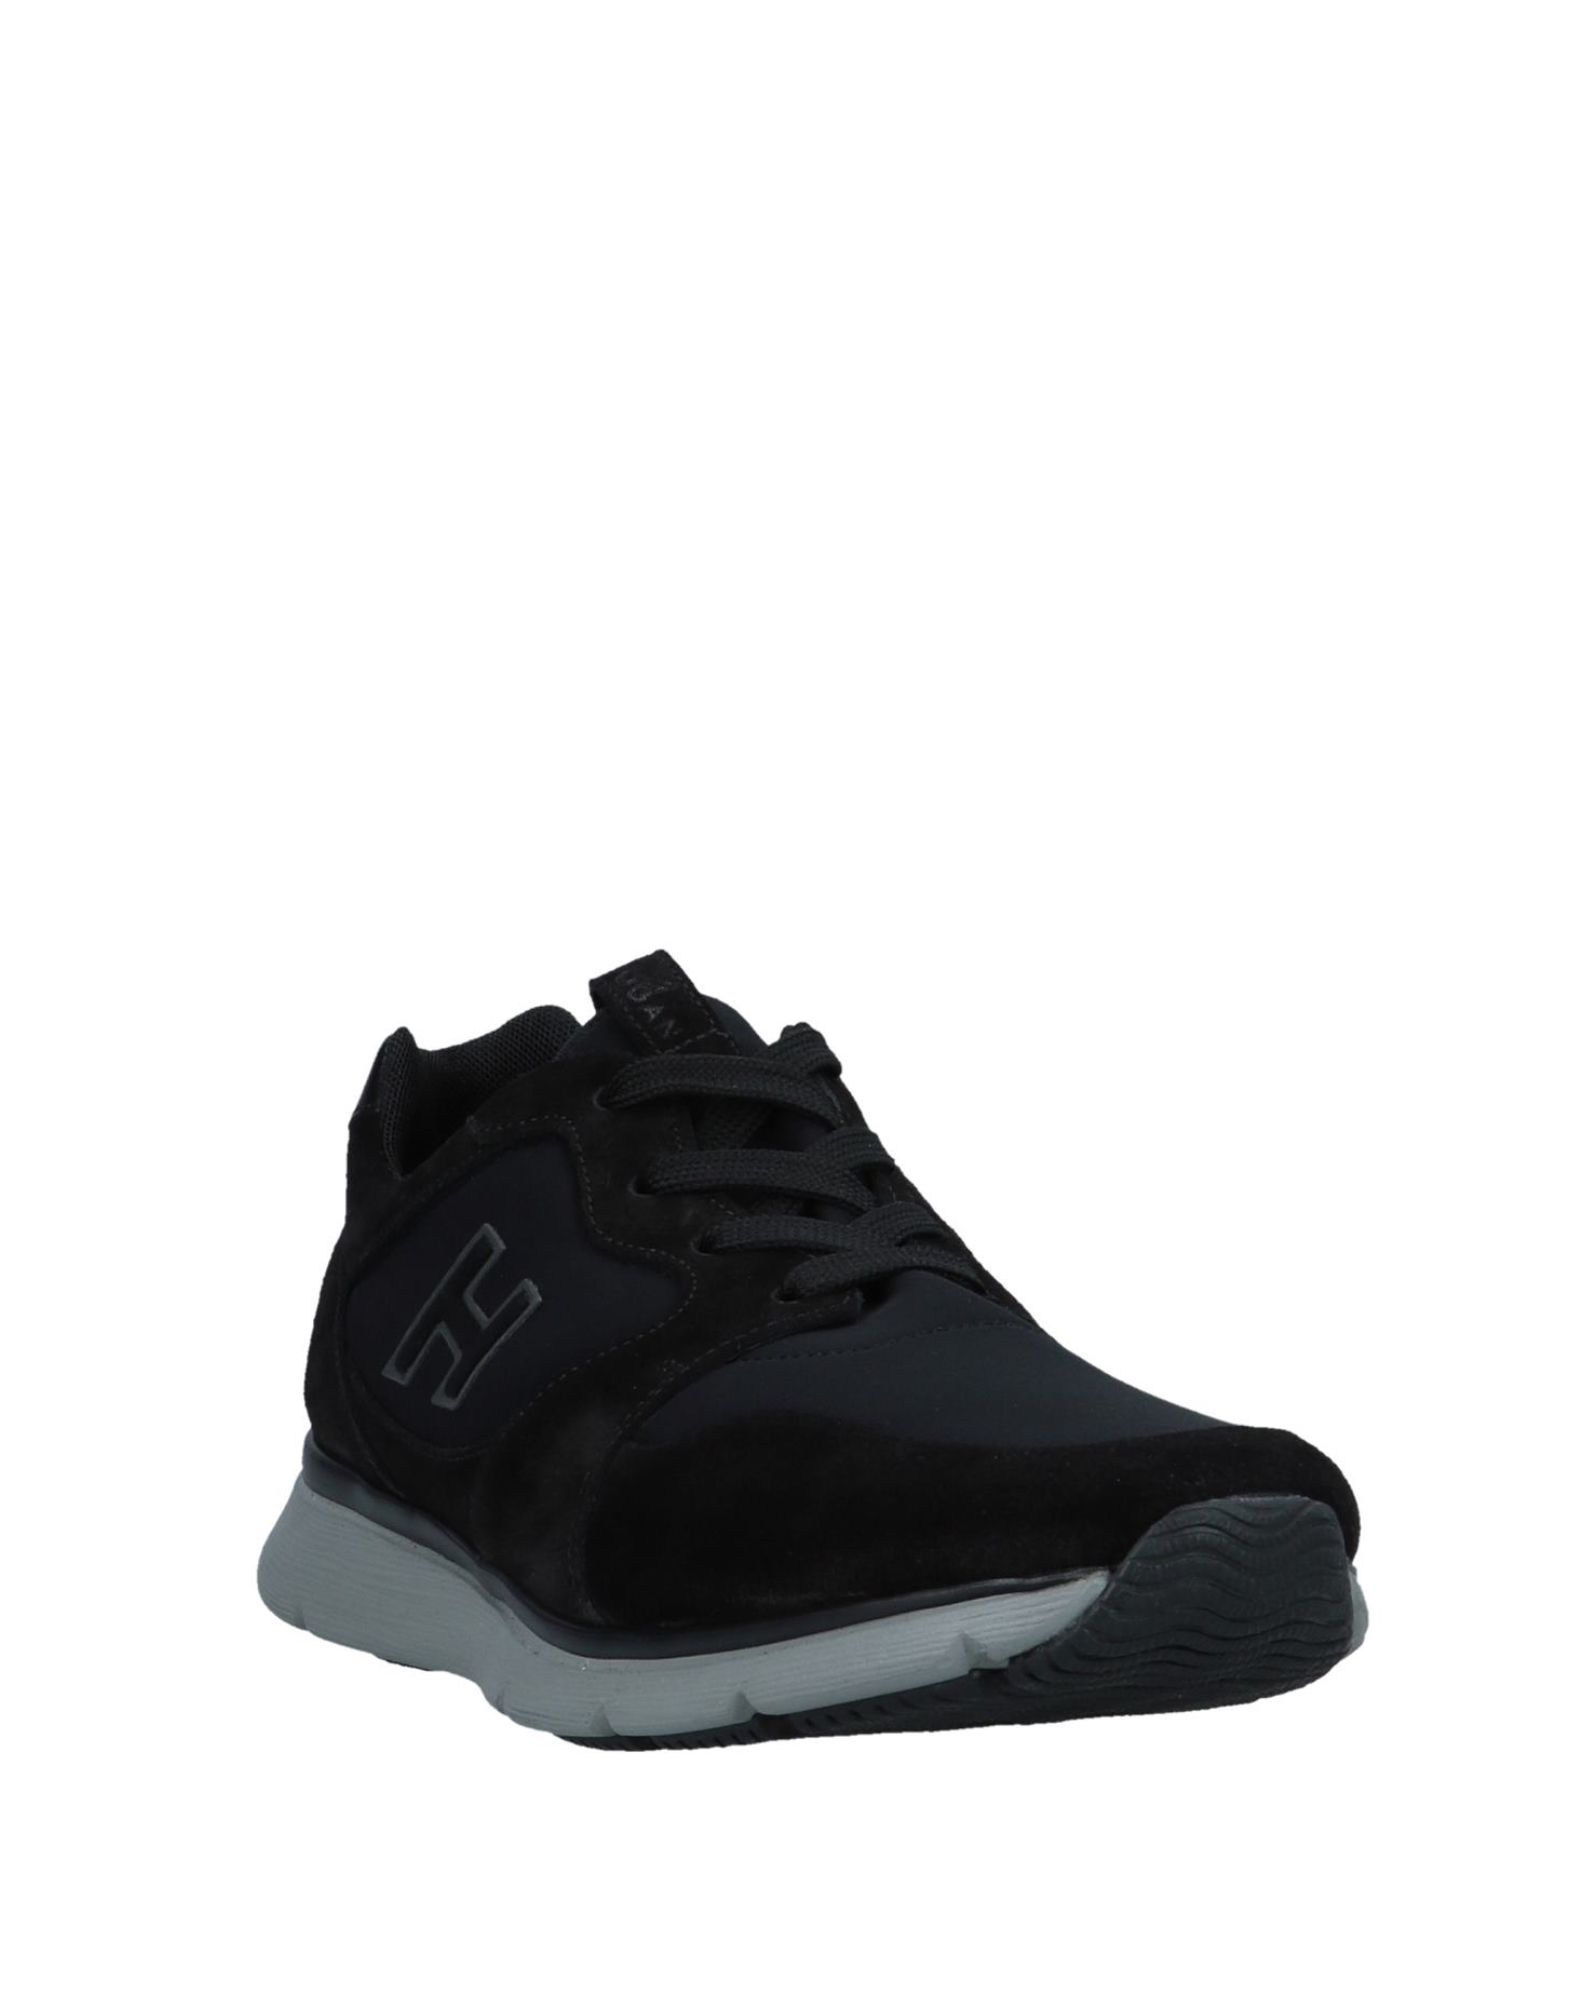 Hogan Sneakers - Men Men Men Hogan Sneakers online on  Australia - 11554267SO d38b5f